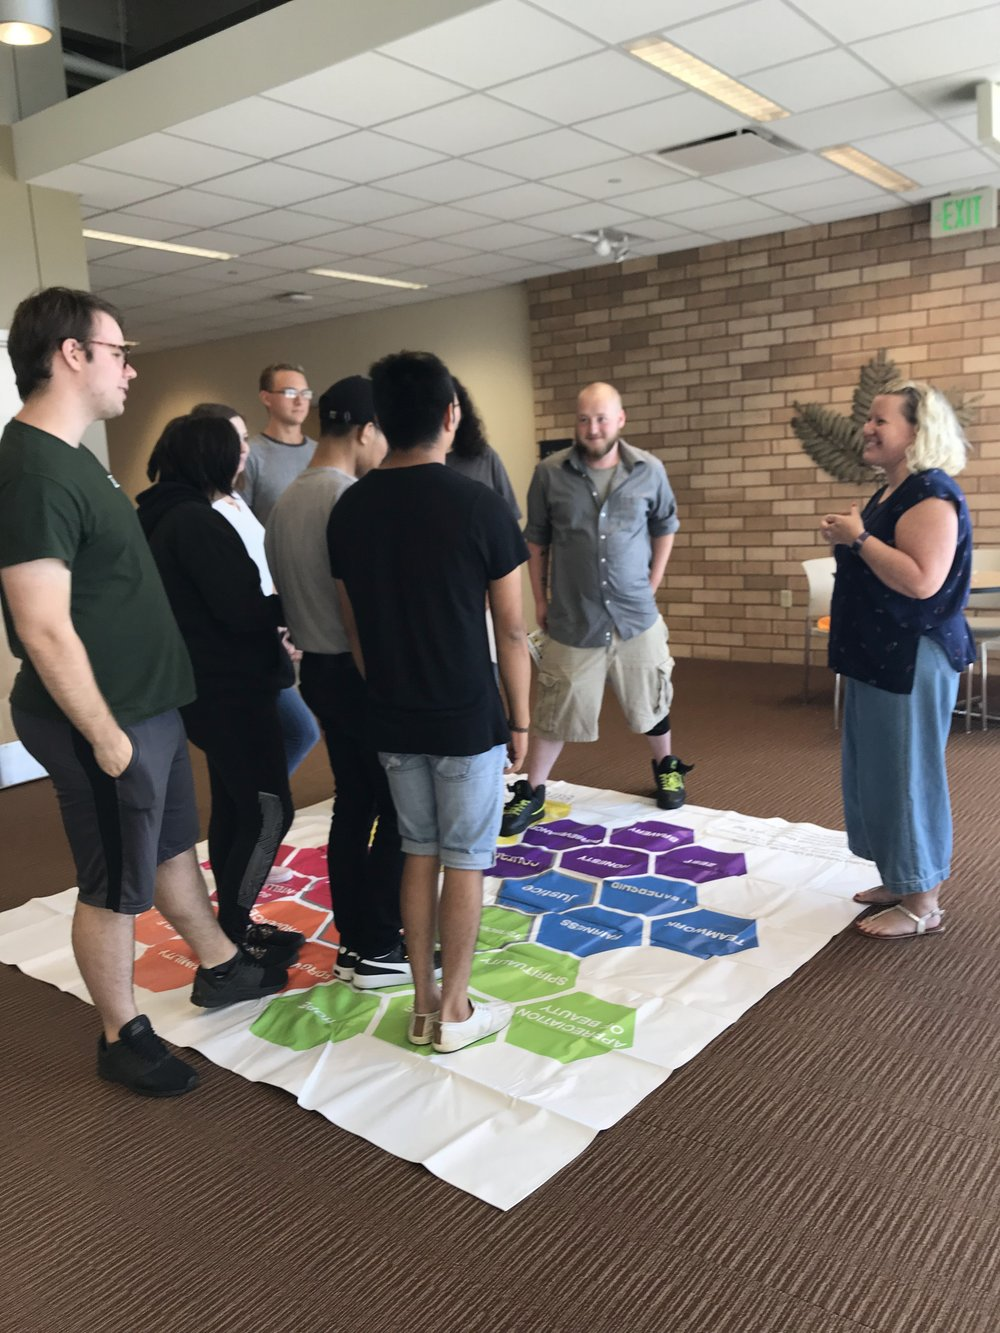 Erica leading students at Ivy Tech through a group coaching activity around seeing their character strengths and acknowledging them in each other.